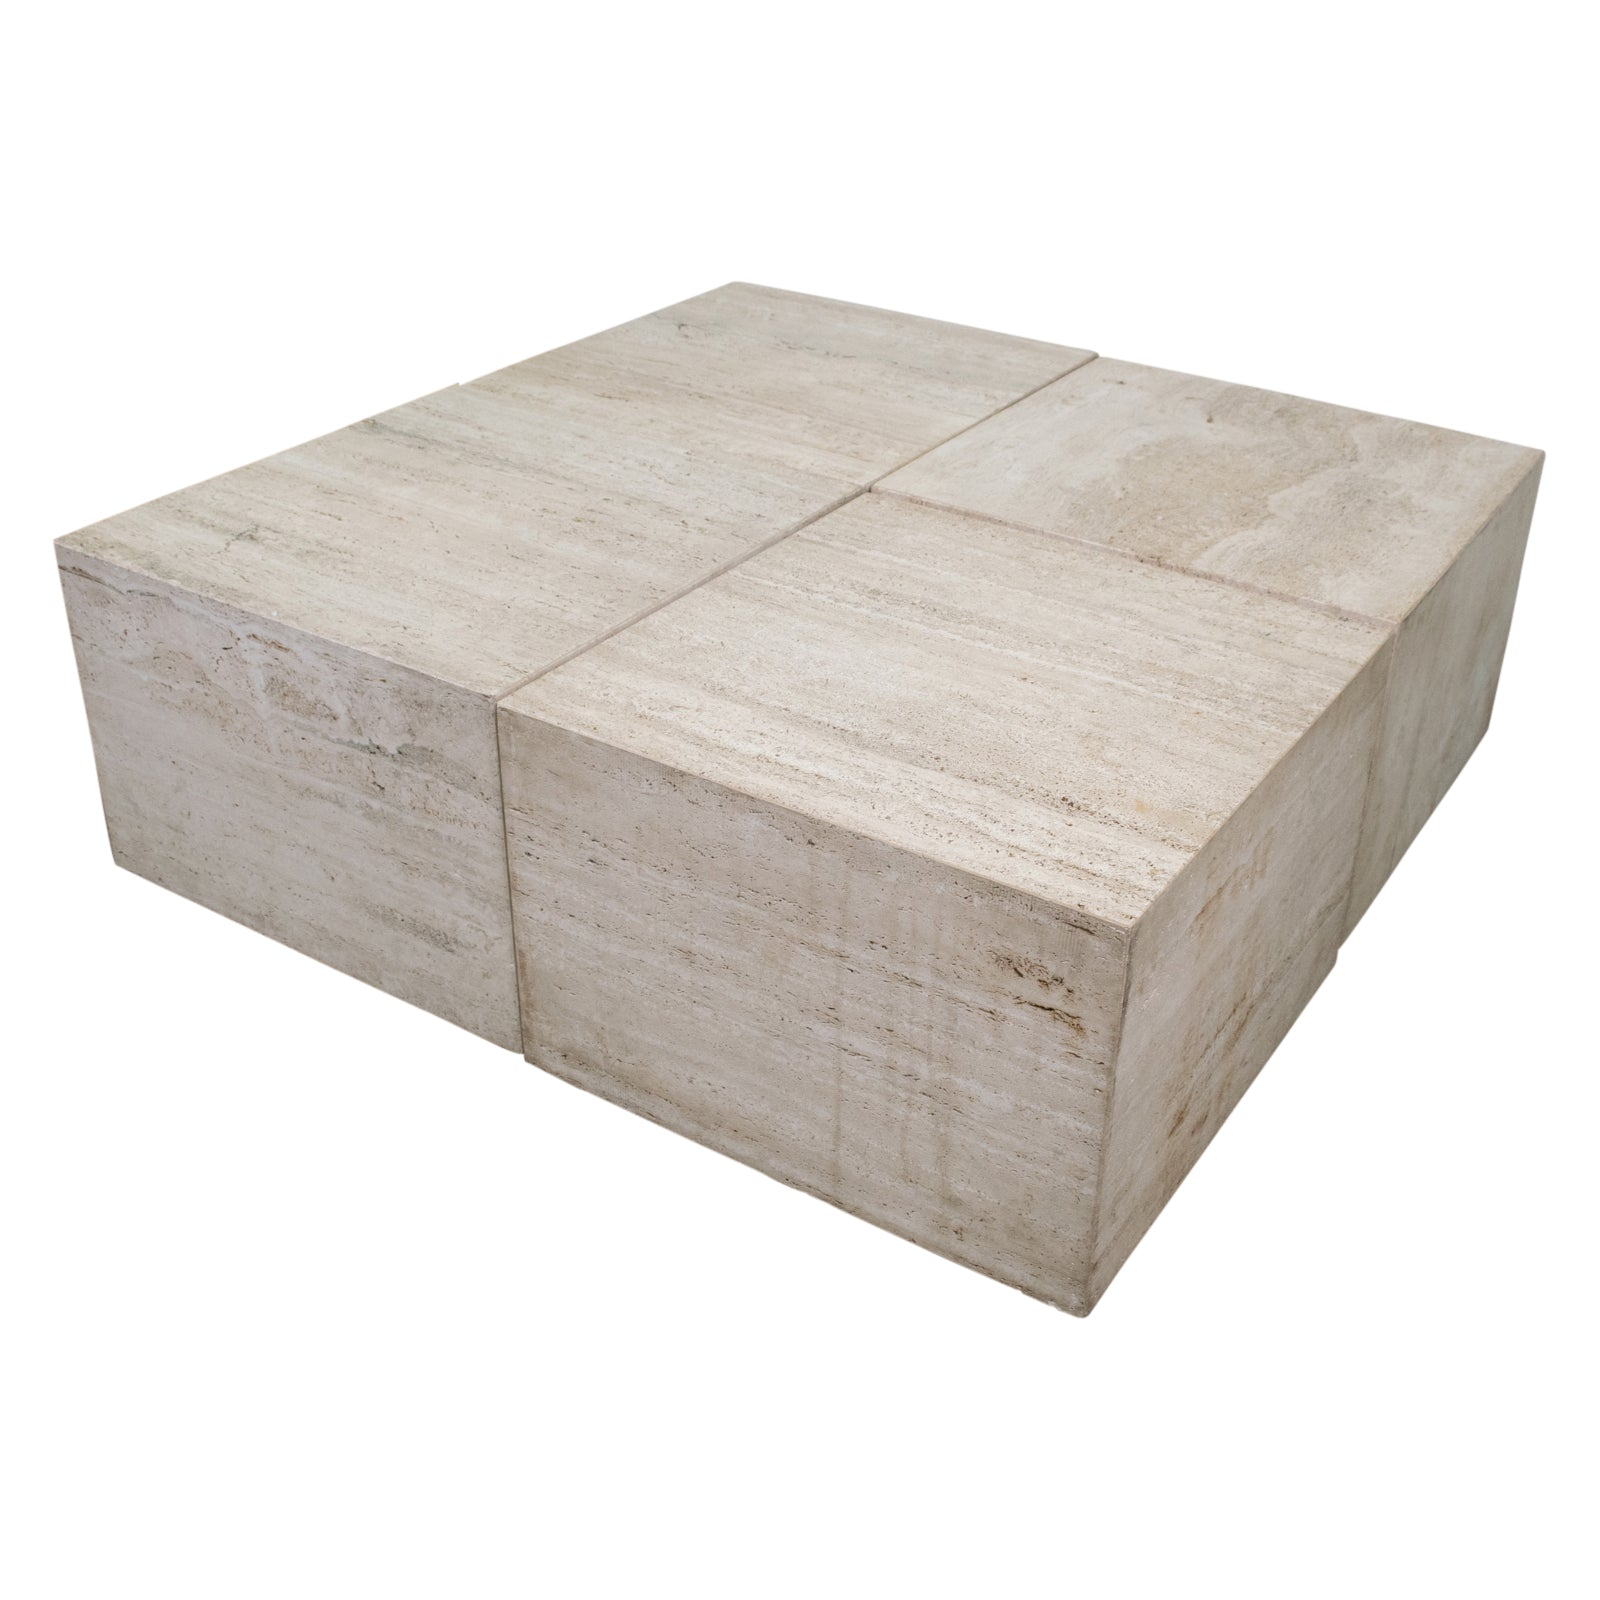 A set of Four Travertine Cubes as a Coffee Table